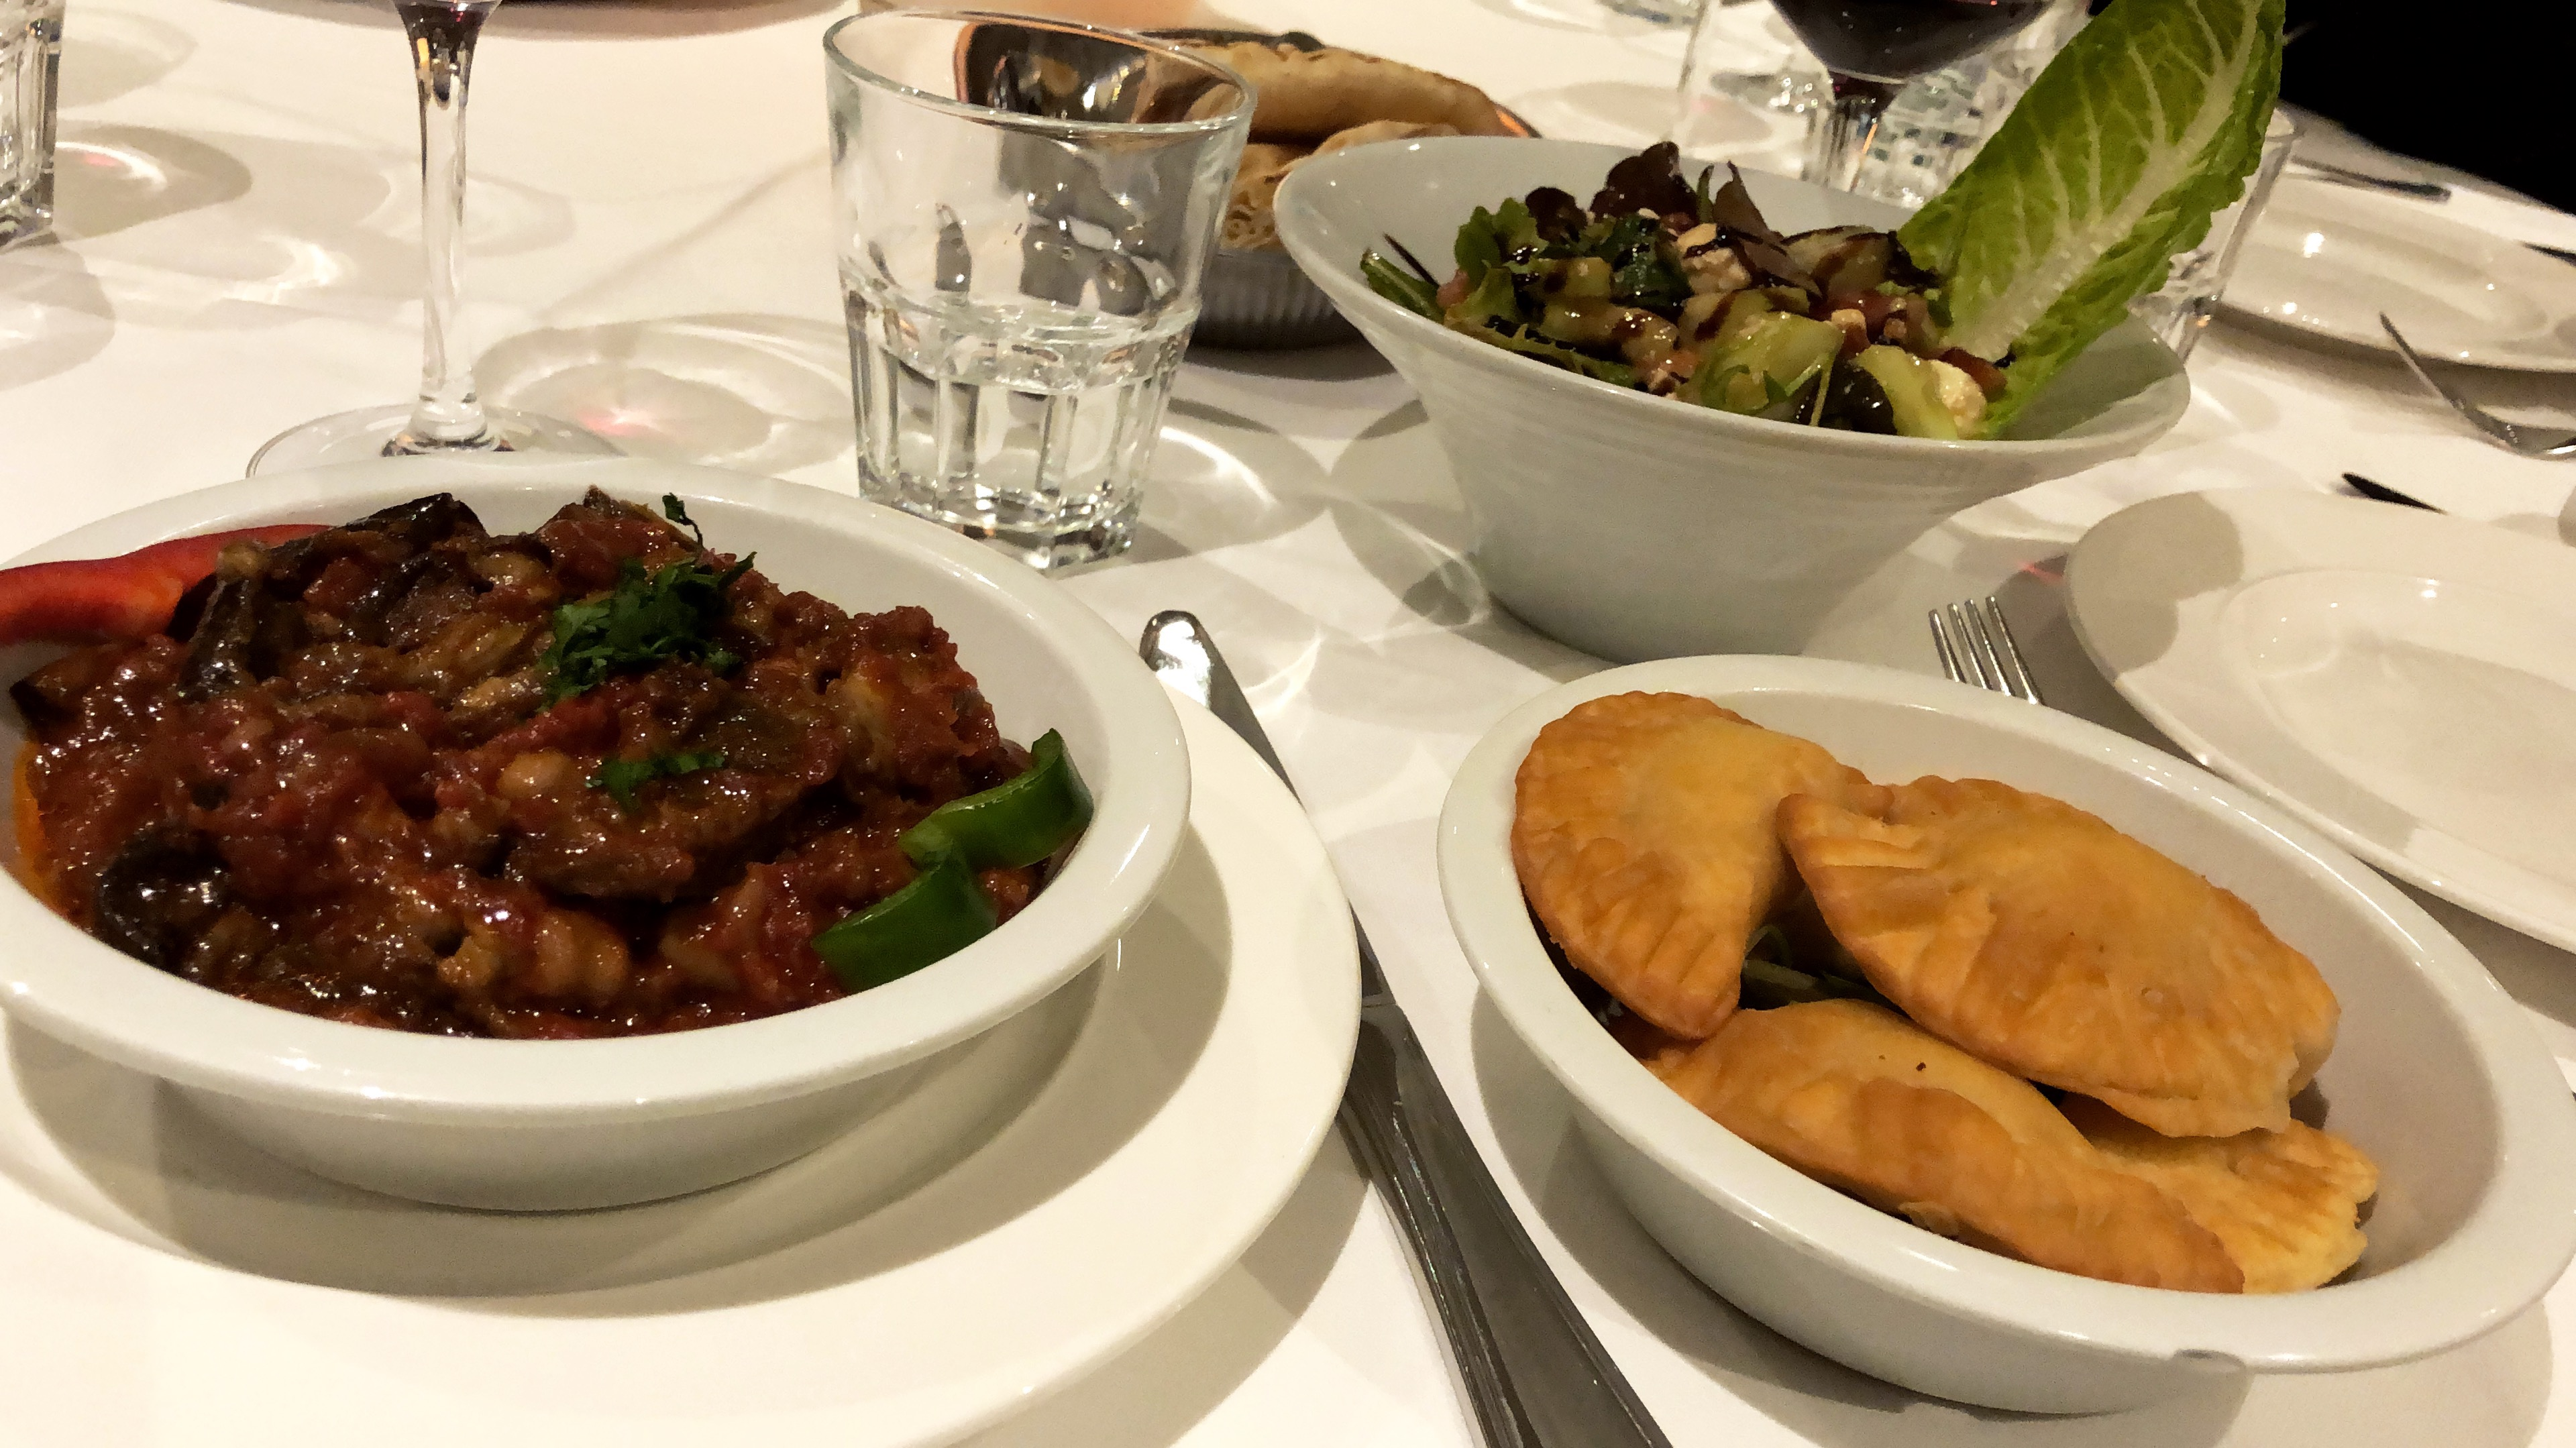 My vegetarian yummy meal at Le Phenicia restaurant - Antibes Water meetup 22-28.02.2018